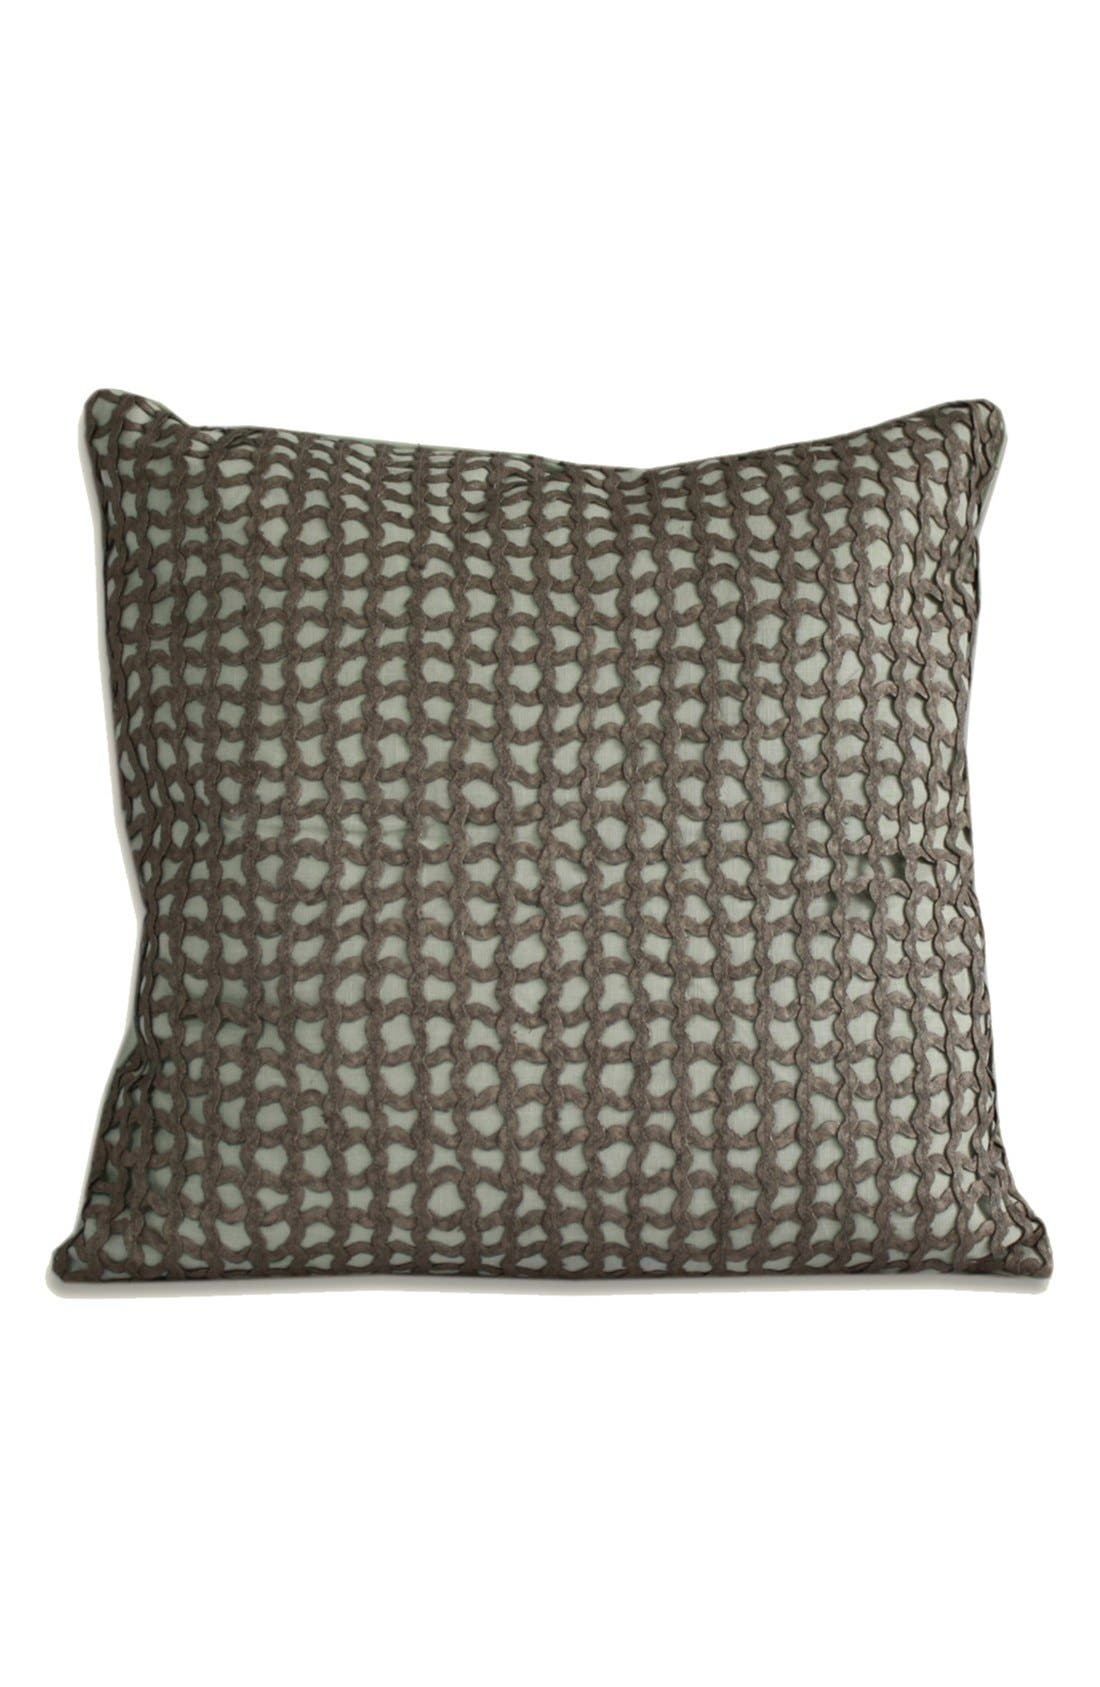 Main Image - Dransfield and Ross House 'Elizabeth Street' Square Pillow